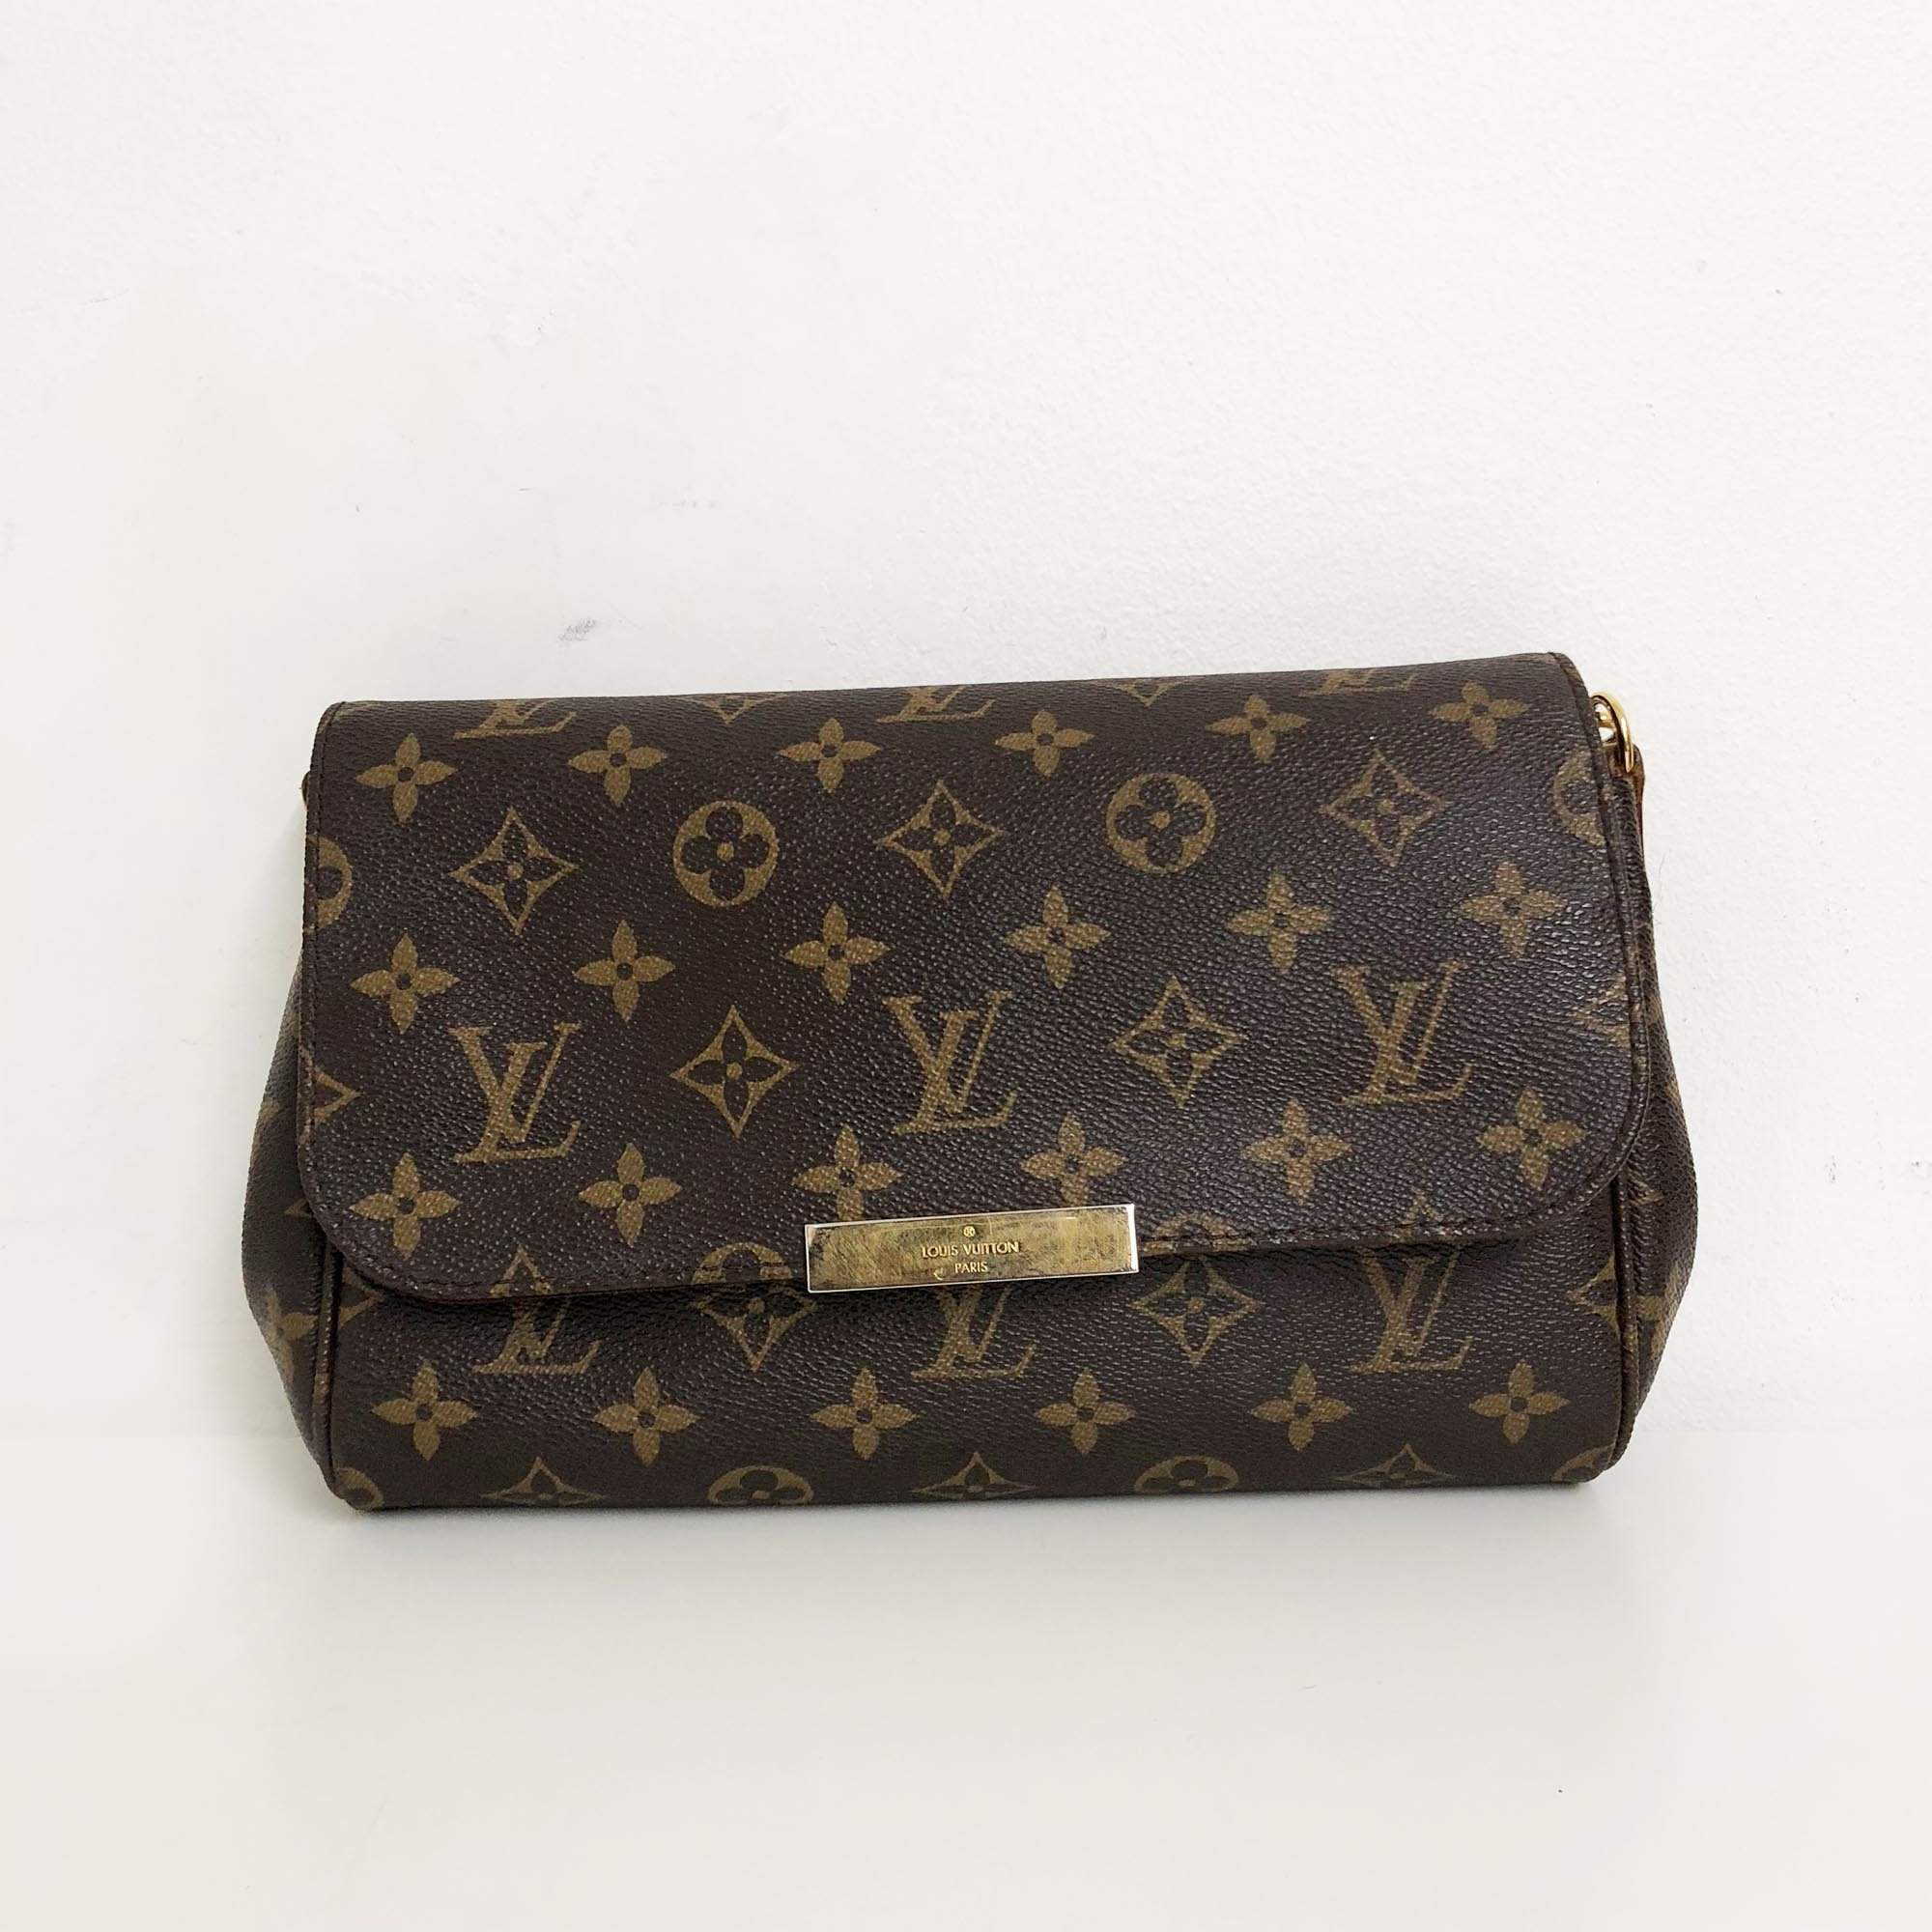 Louis Vuitton Monogram Favorite MM Bag